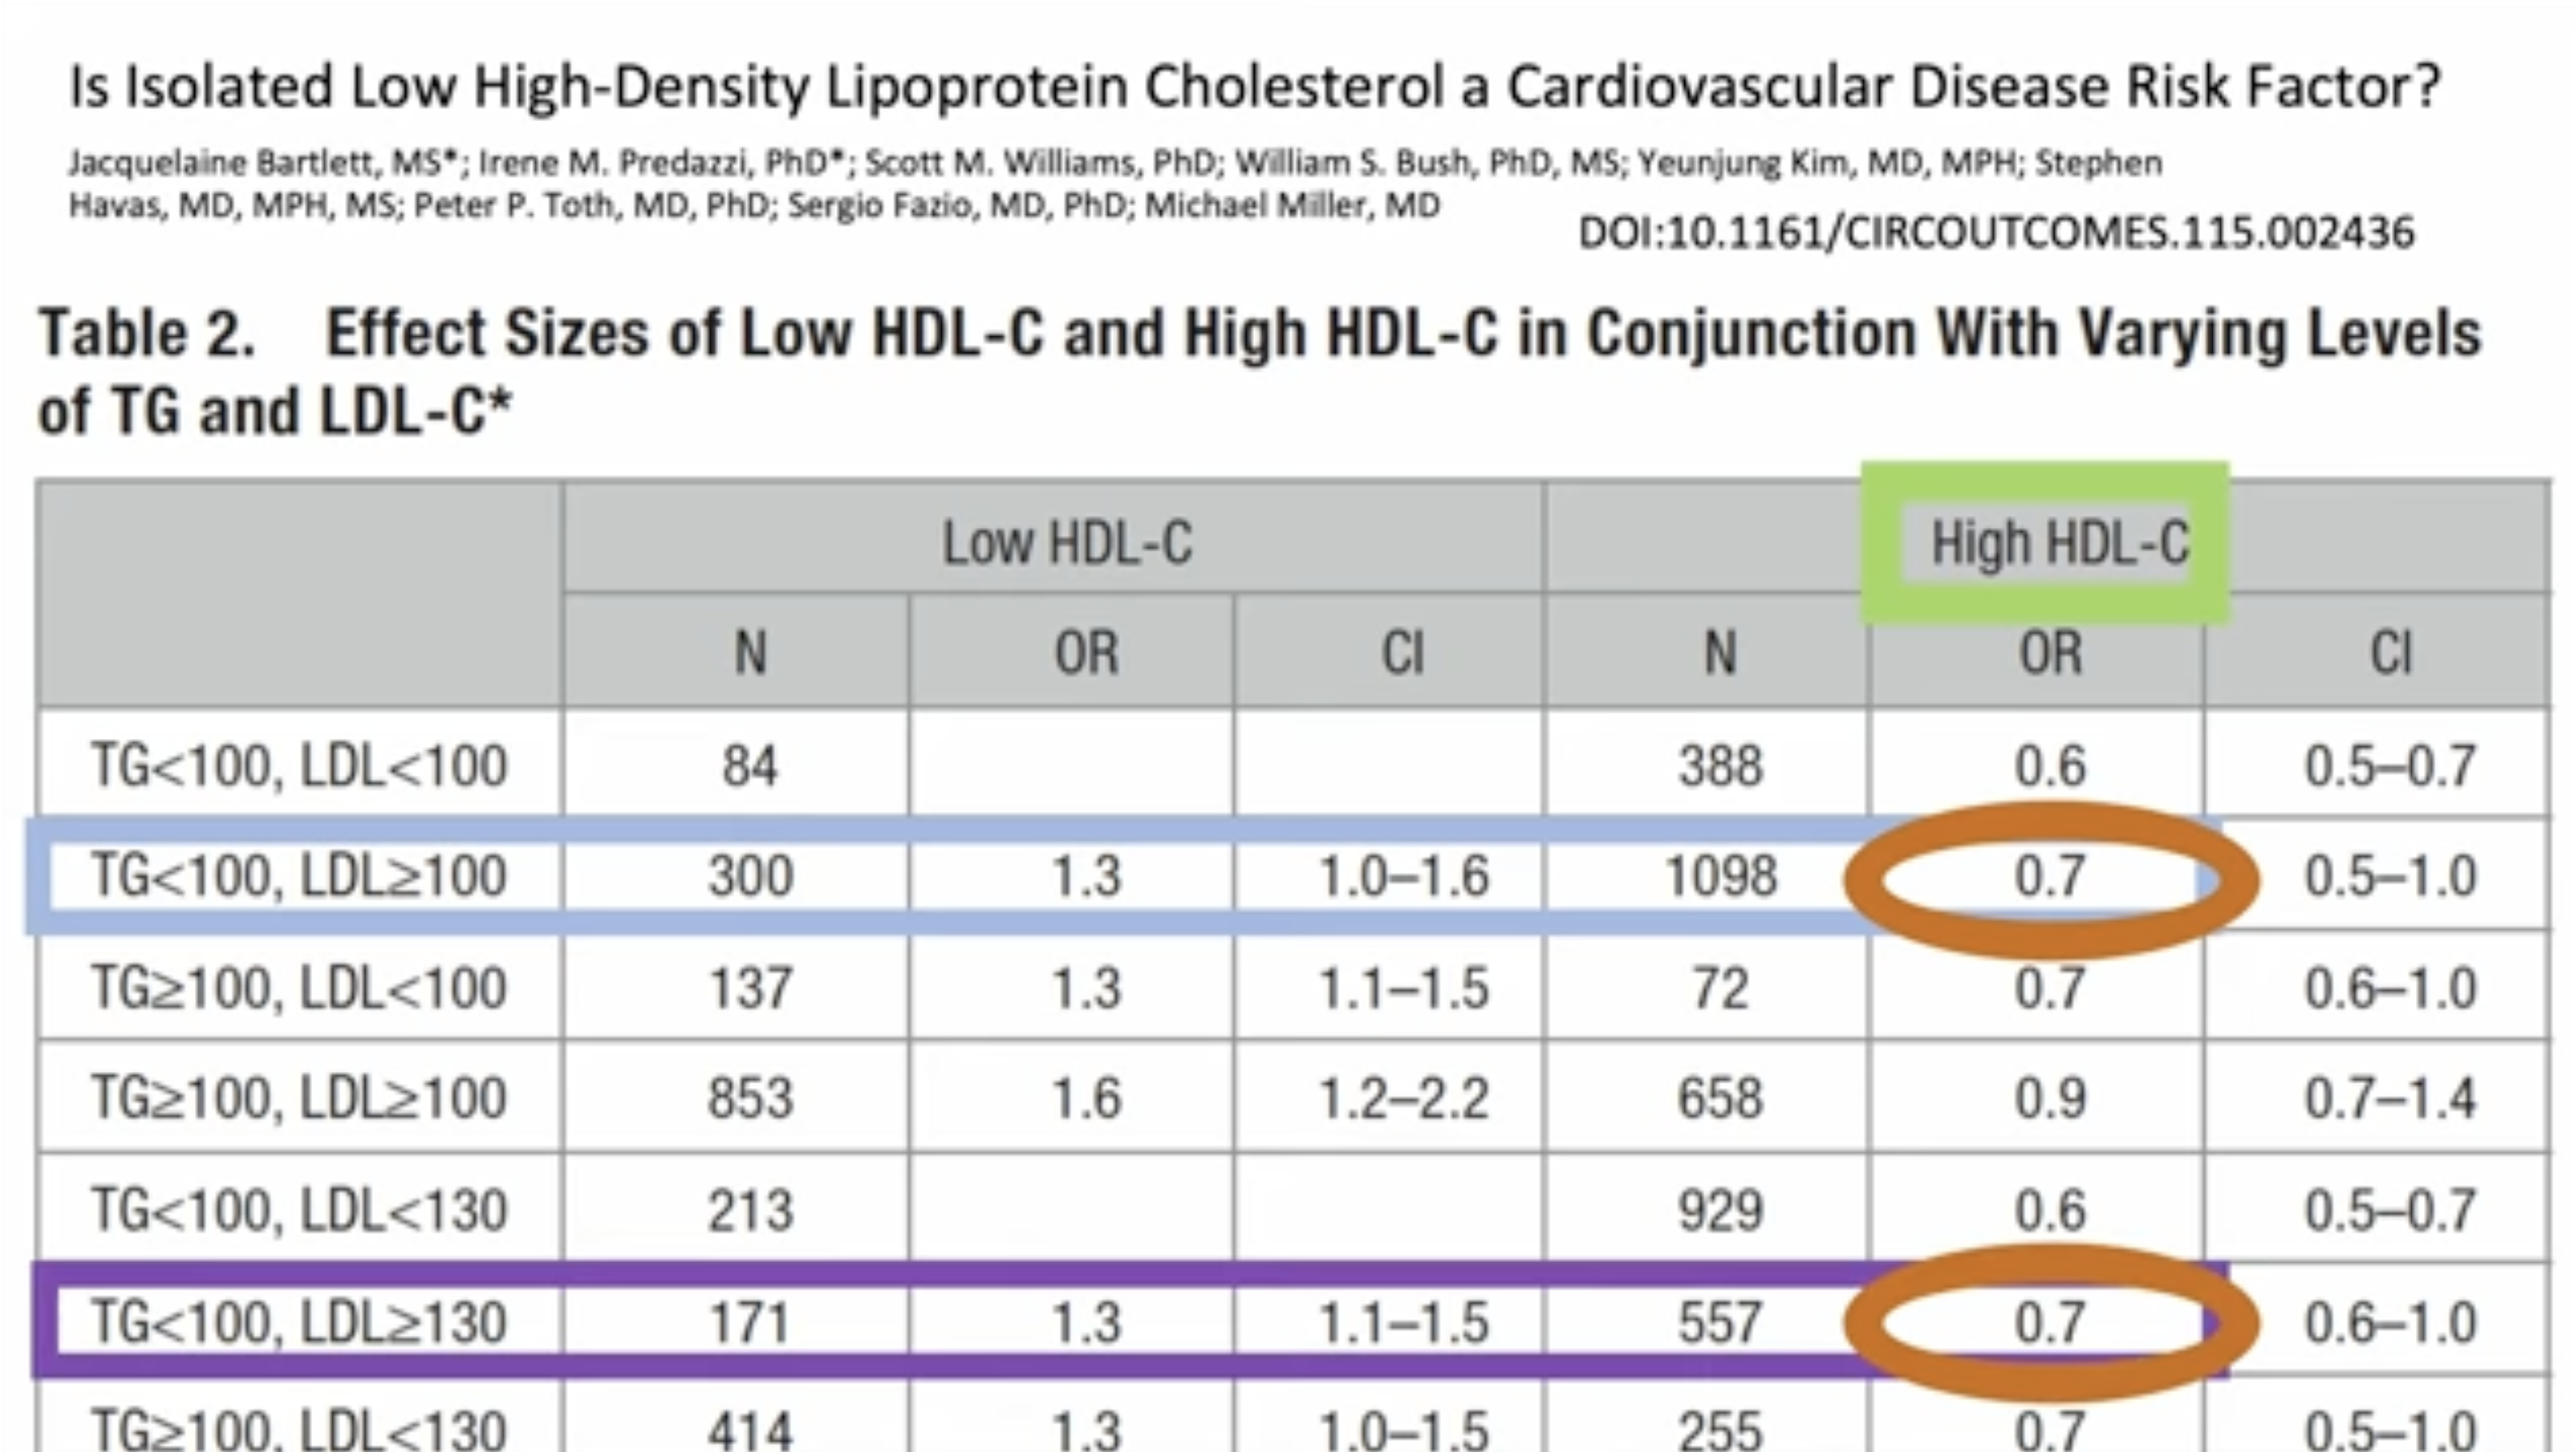 Is Isolated Low High-Density Lipoprotein Cholesterol a Cardiovascular Disease Risk Factor?